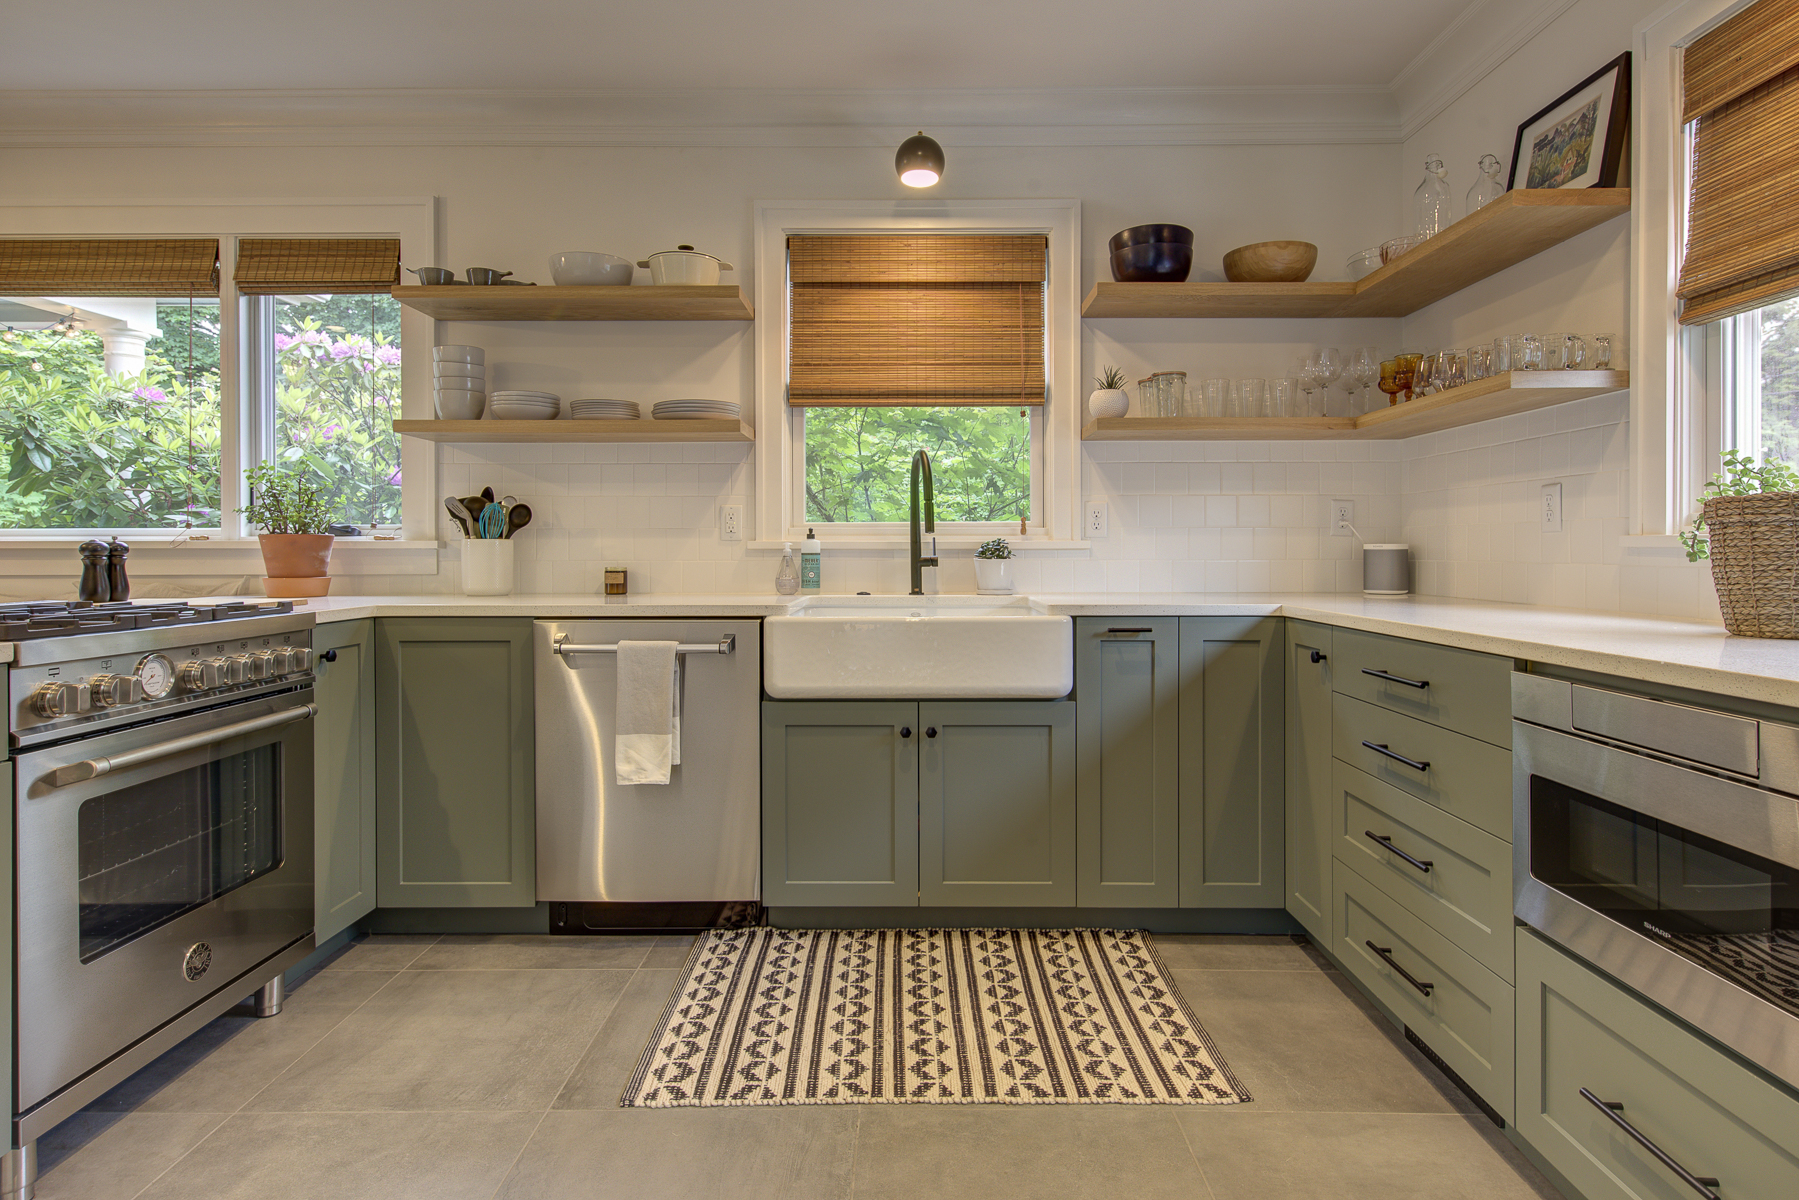 Harka Architecture Rose City Park Kitchen